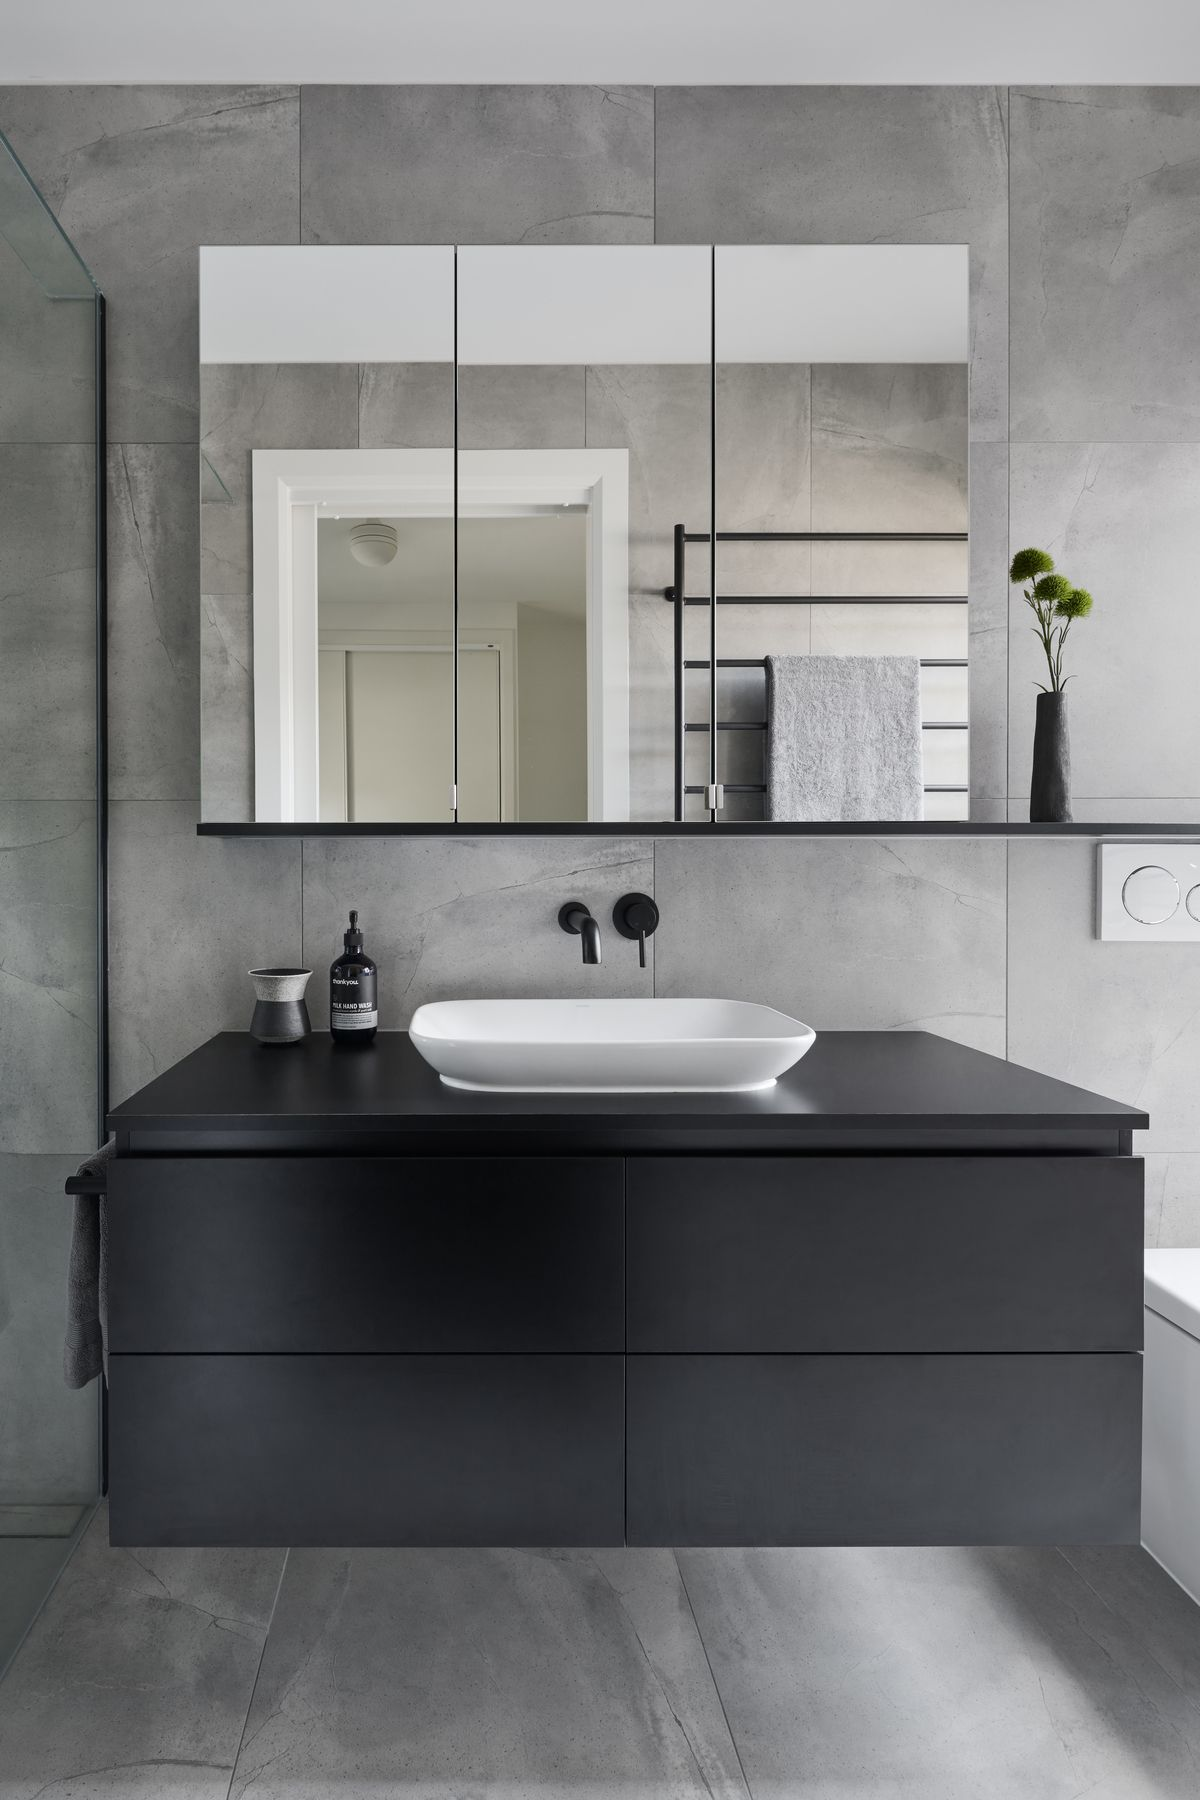 This Modern Tropical Home Is A Granny Flat For A Hip Elderly Couple In 2021 Black Vanity Bathroom Bathroom Design Black Black Cabinets Bathroom Abela total bathroom renovations